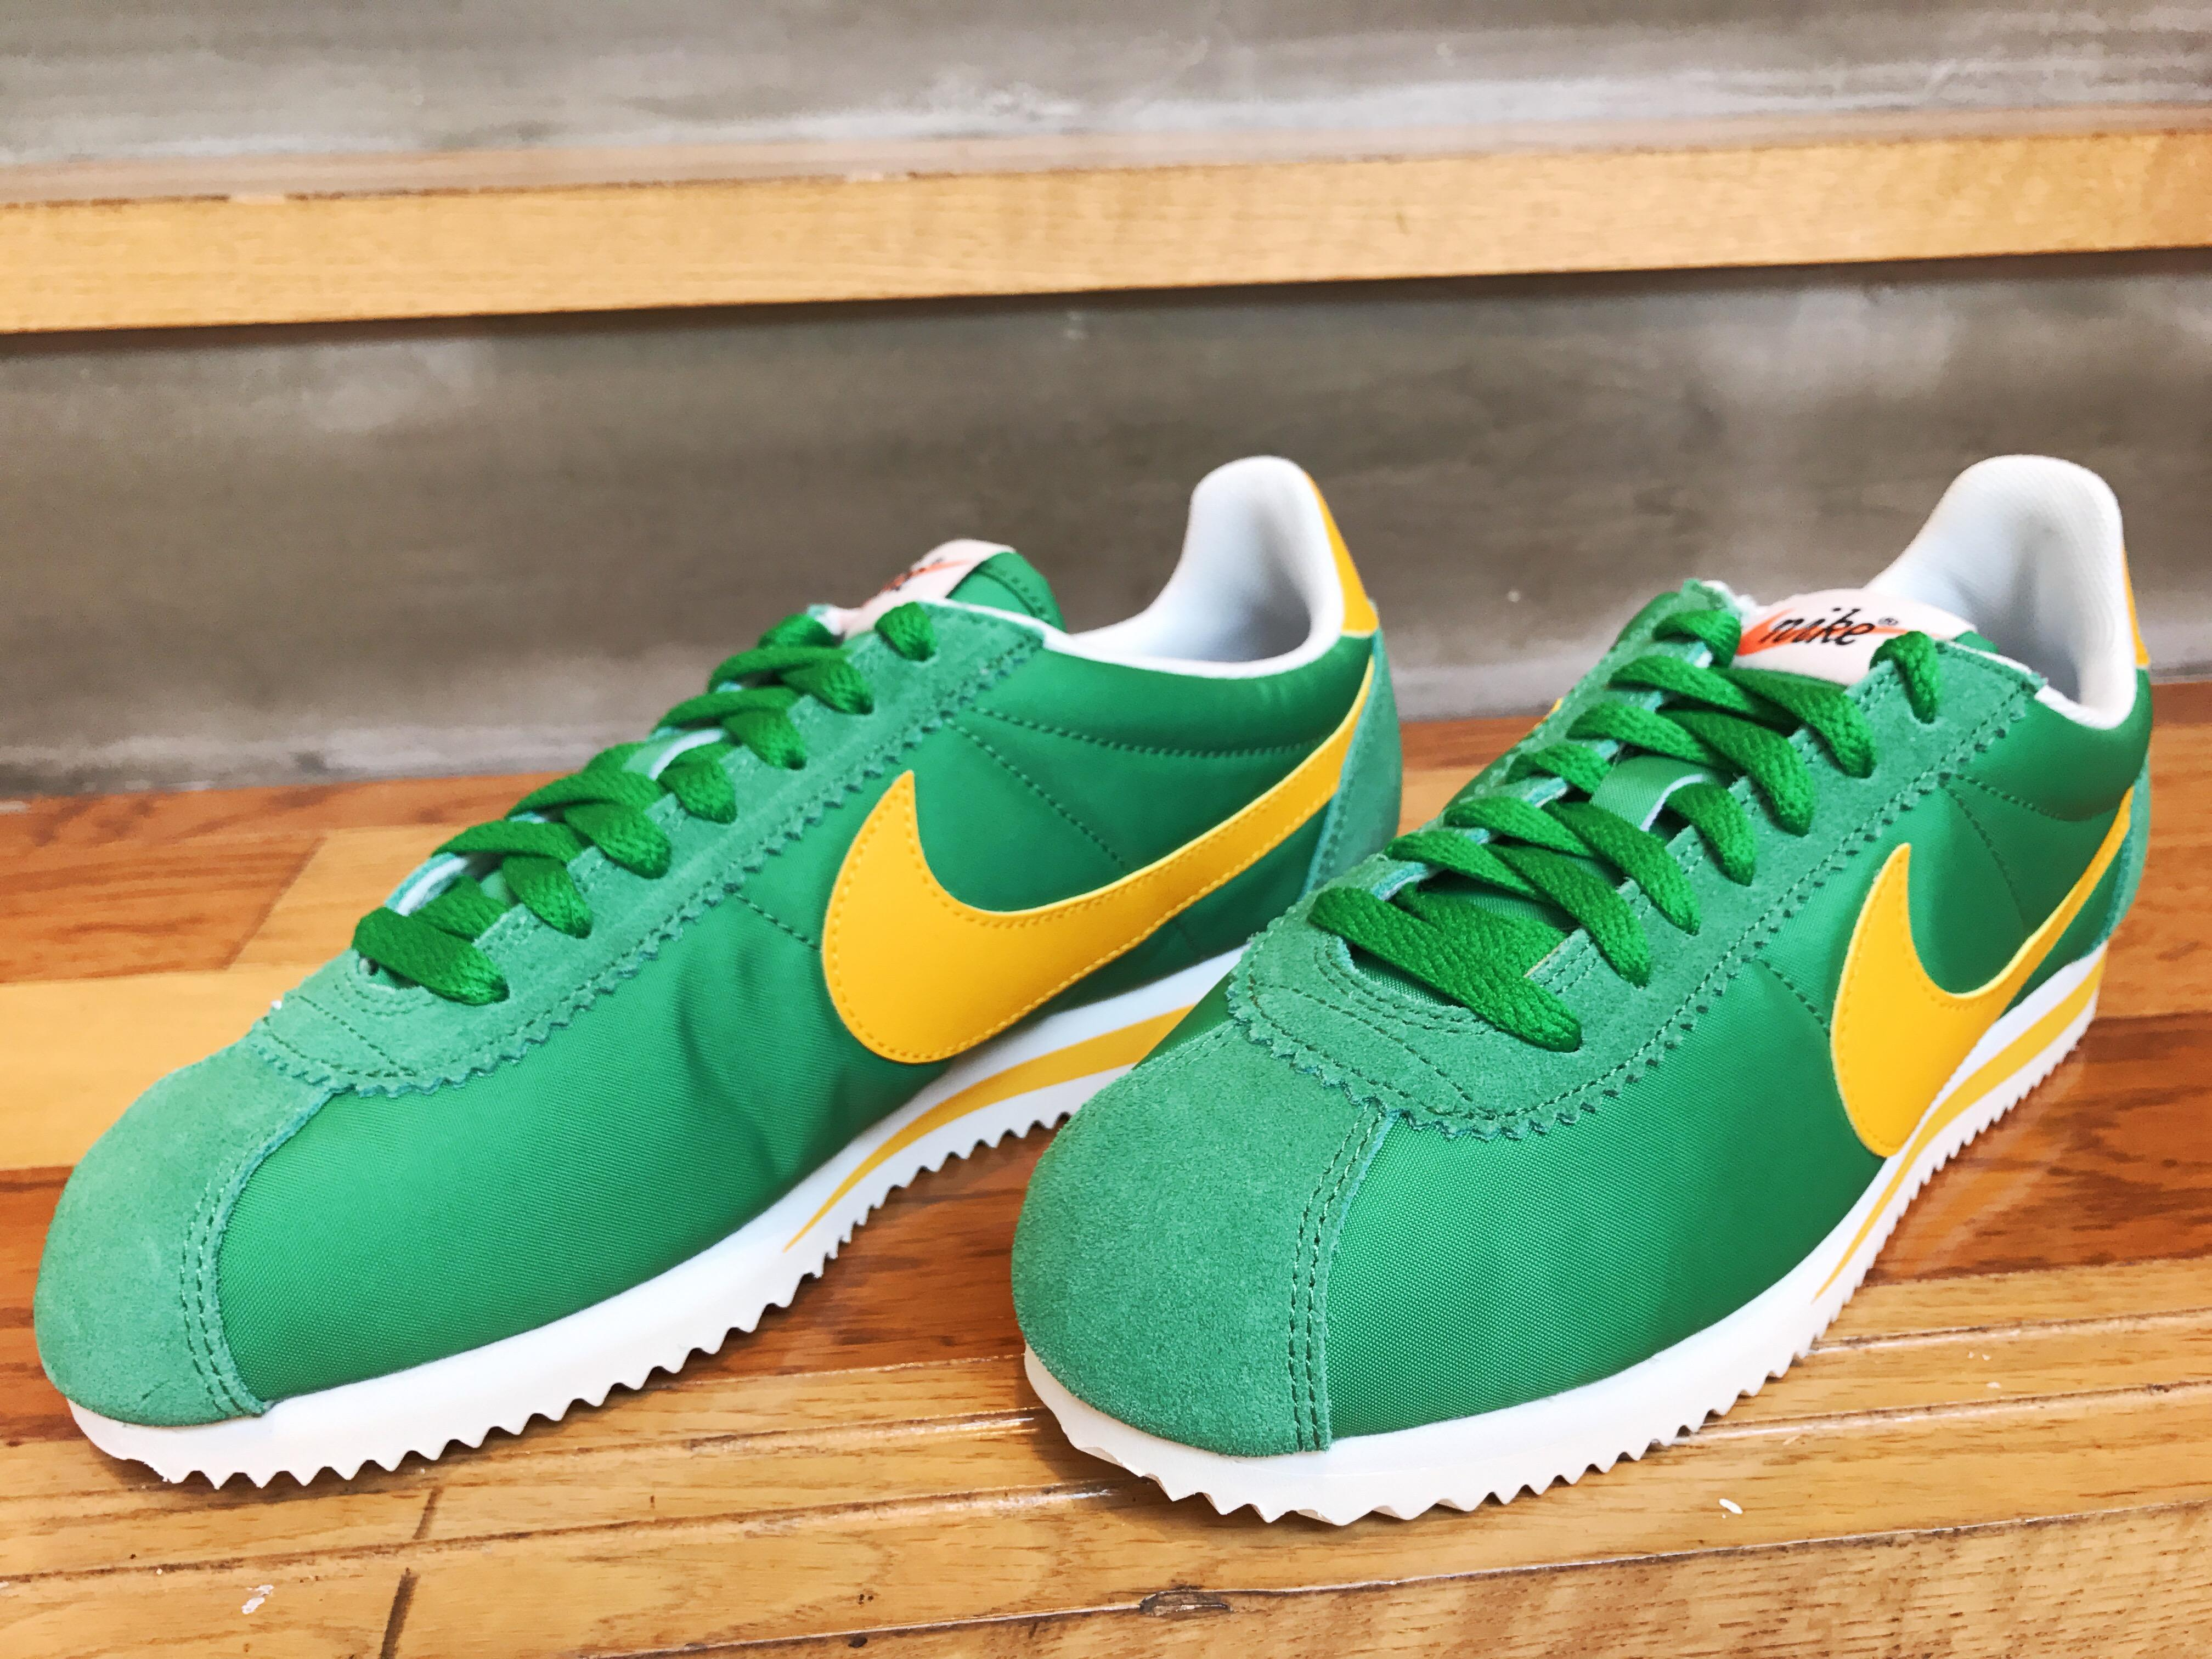 best website cb545 b5284 WMENS CLASSIC CORTEZ PREM XLV 882258-301,601. SIZE22.5~25.5cm ¥9,720-(TAX  IN)